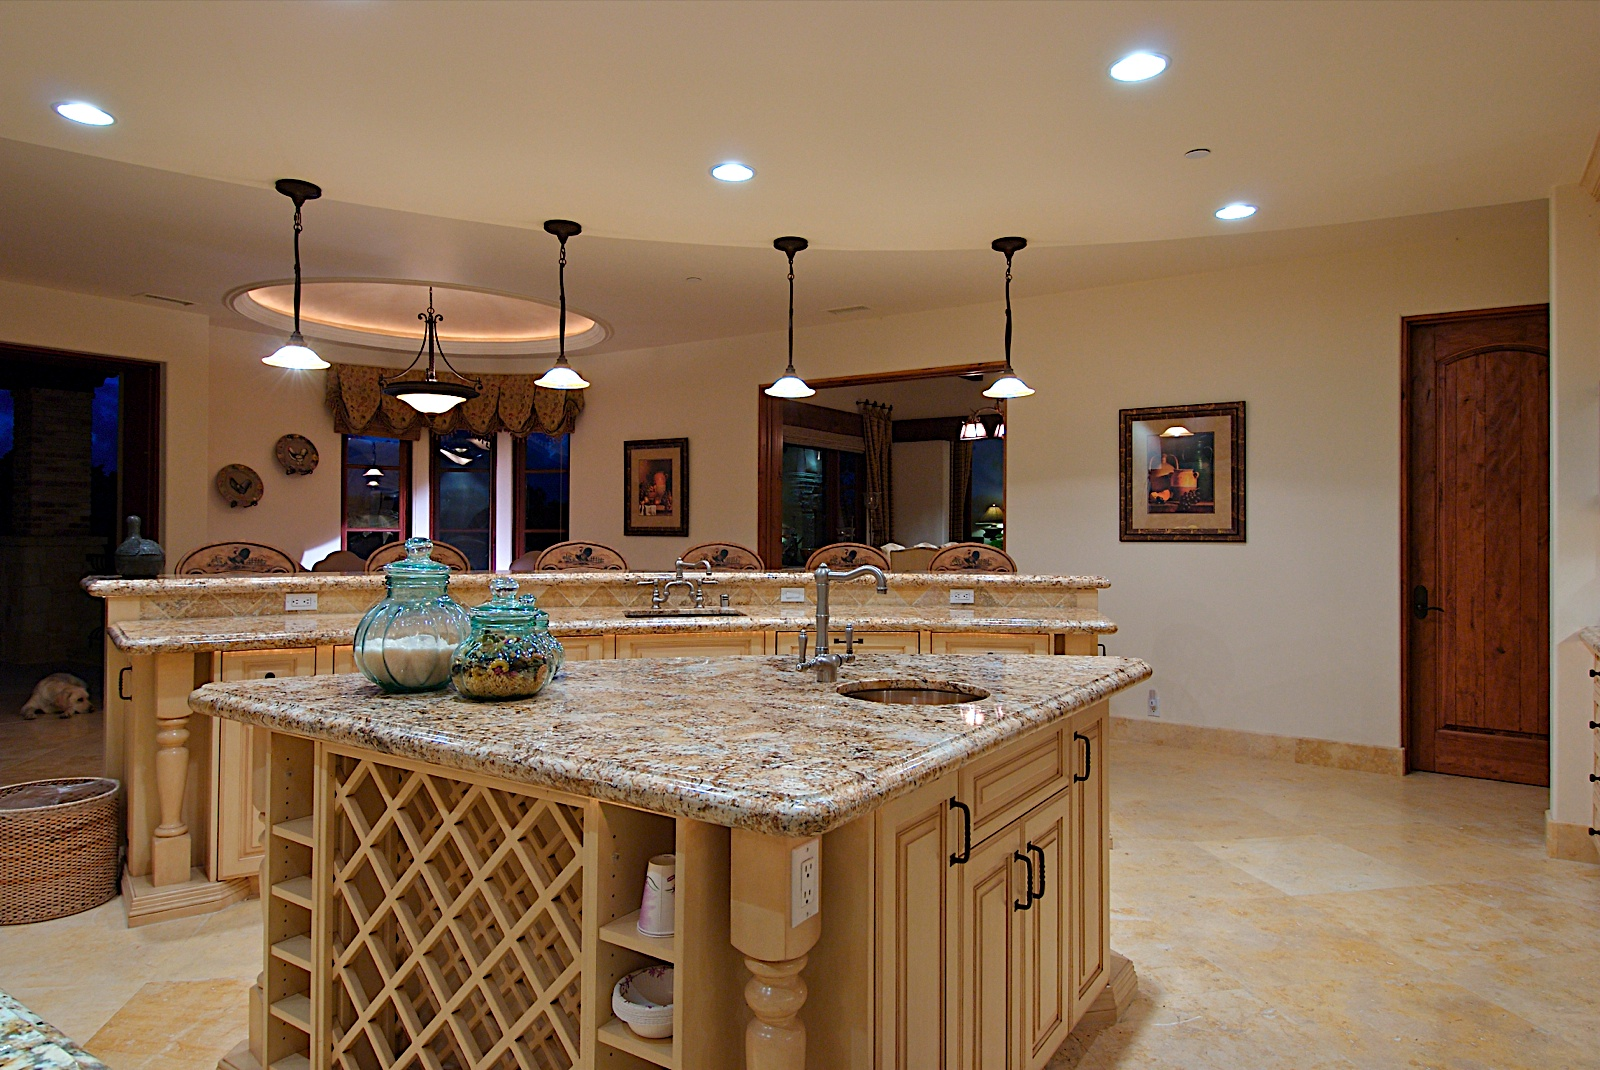 15 brilliant ideas for proper kitchen lighting kitchen lighting ideas